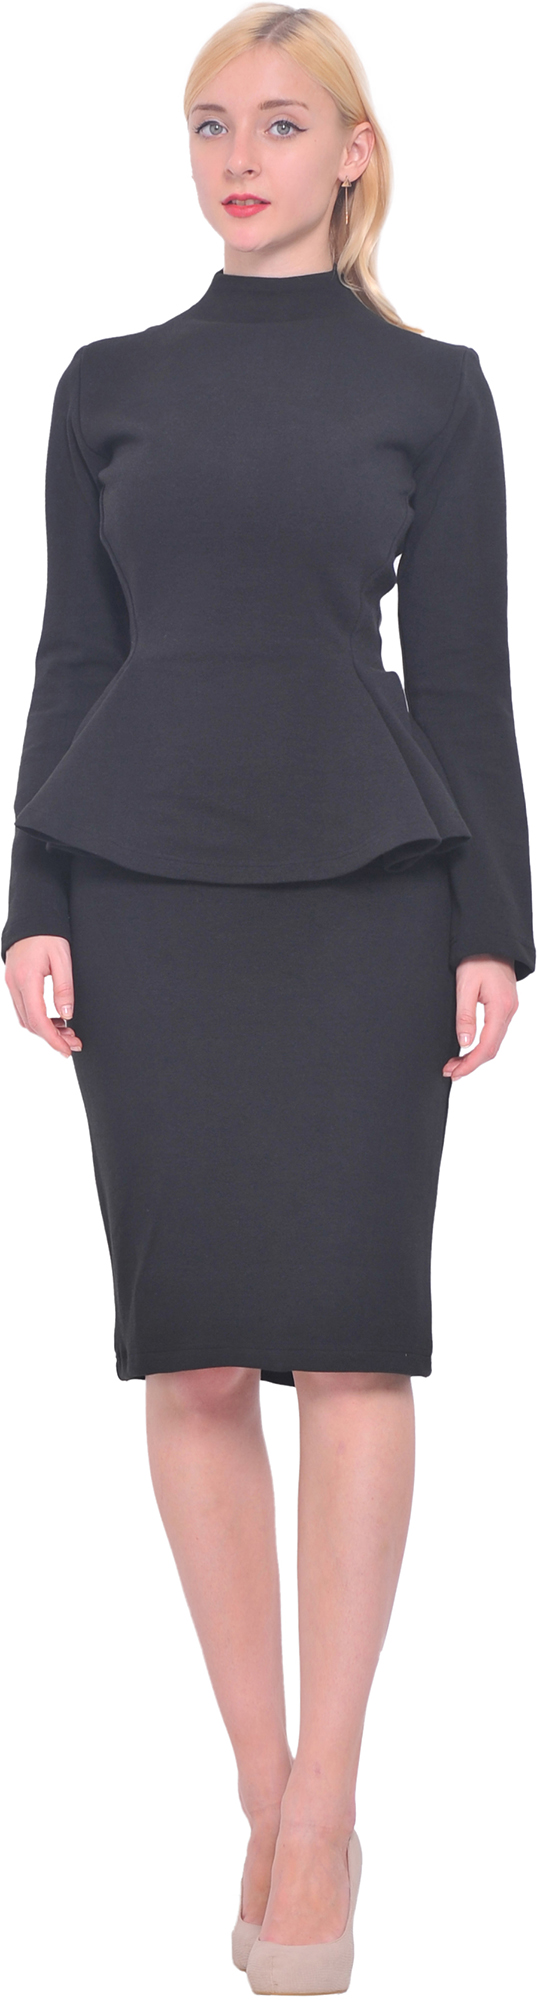 Details: Solid hued, peplum maternity midi dress featuring short sleeves with cute ruffle accent, side pockets, and a rounded neckline. This style was created to be worn before, during, and after pregnancy.